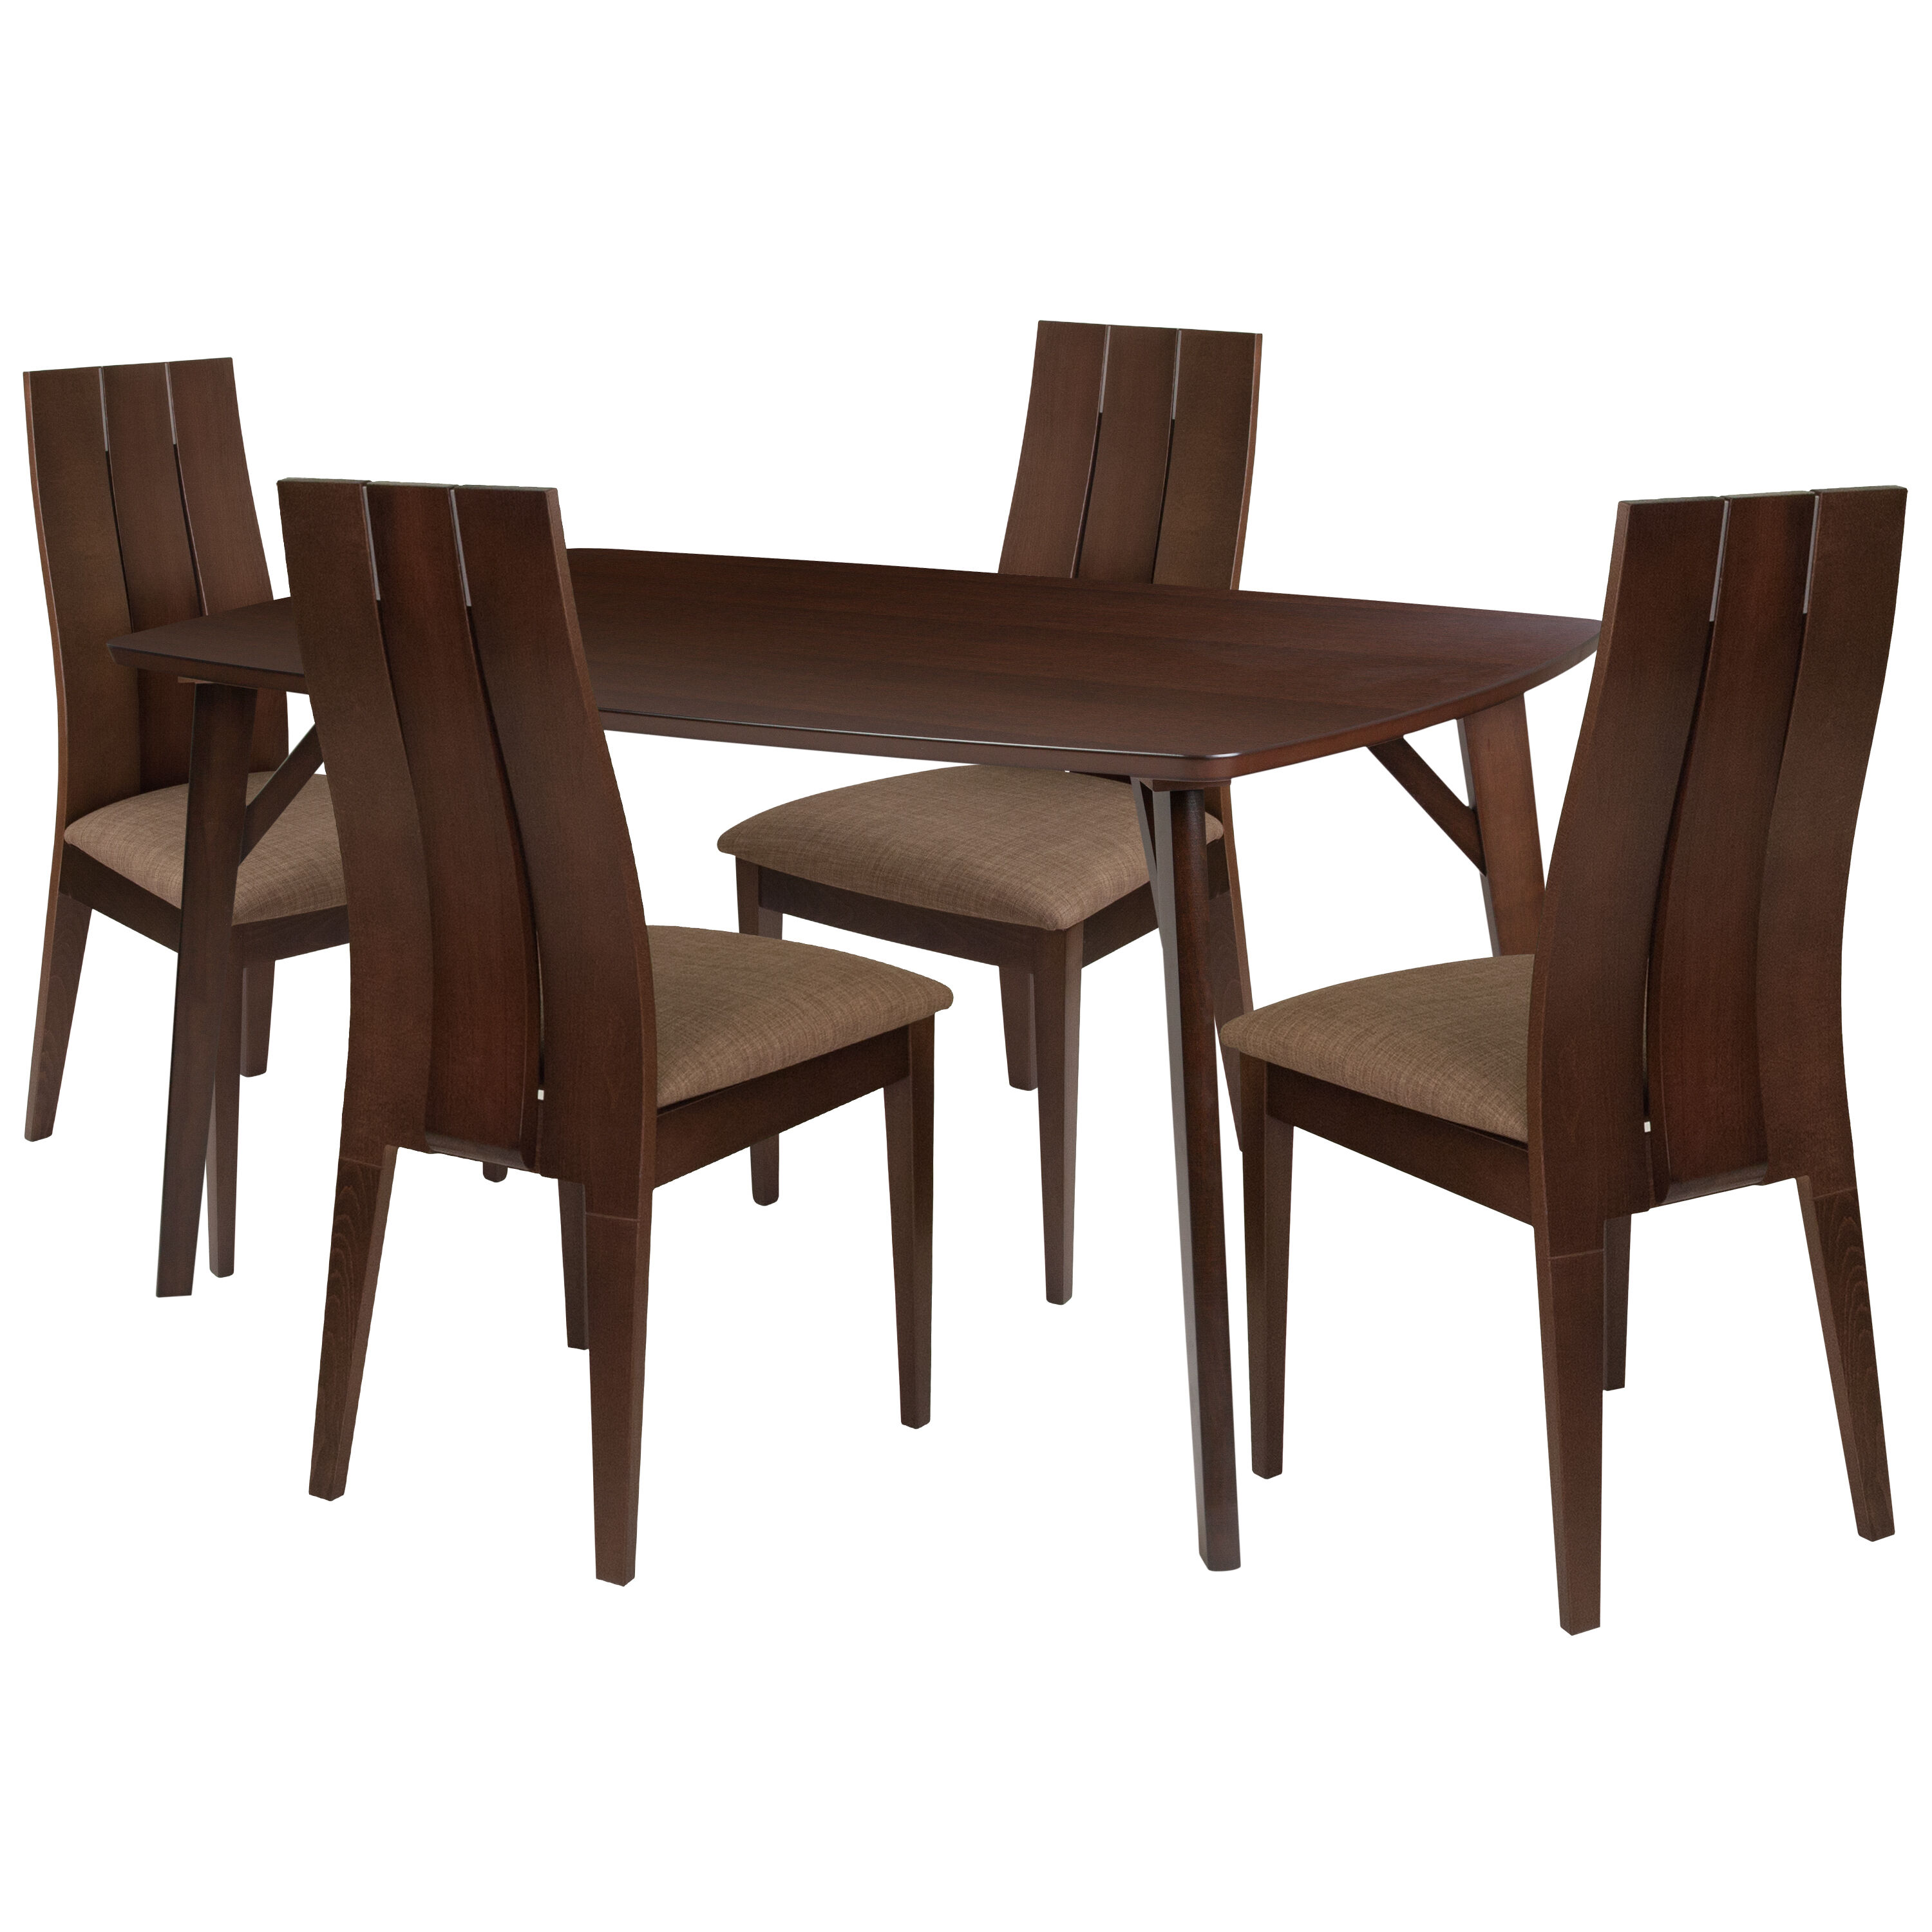 ... Our Dearborn 5 Piece Espresso Wood Dining Table Set With Wide Slat Back  Wood Dining Chairs